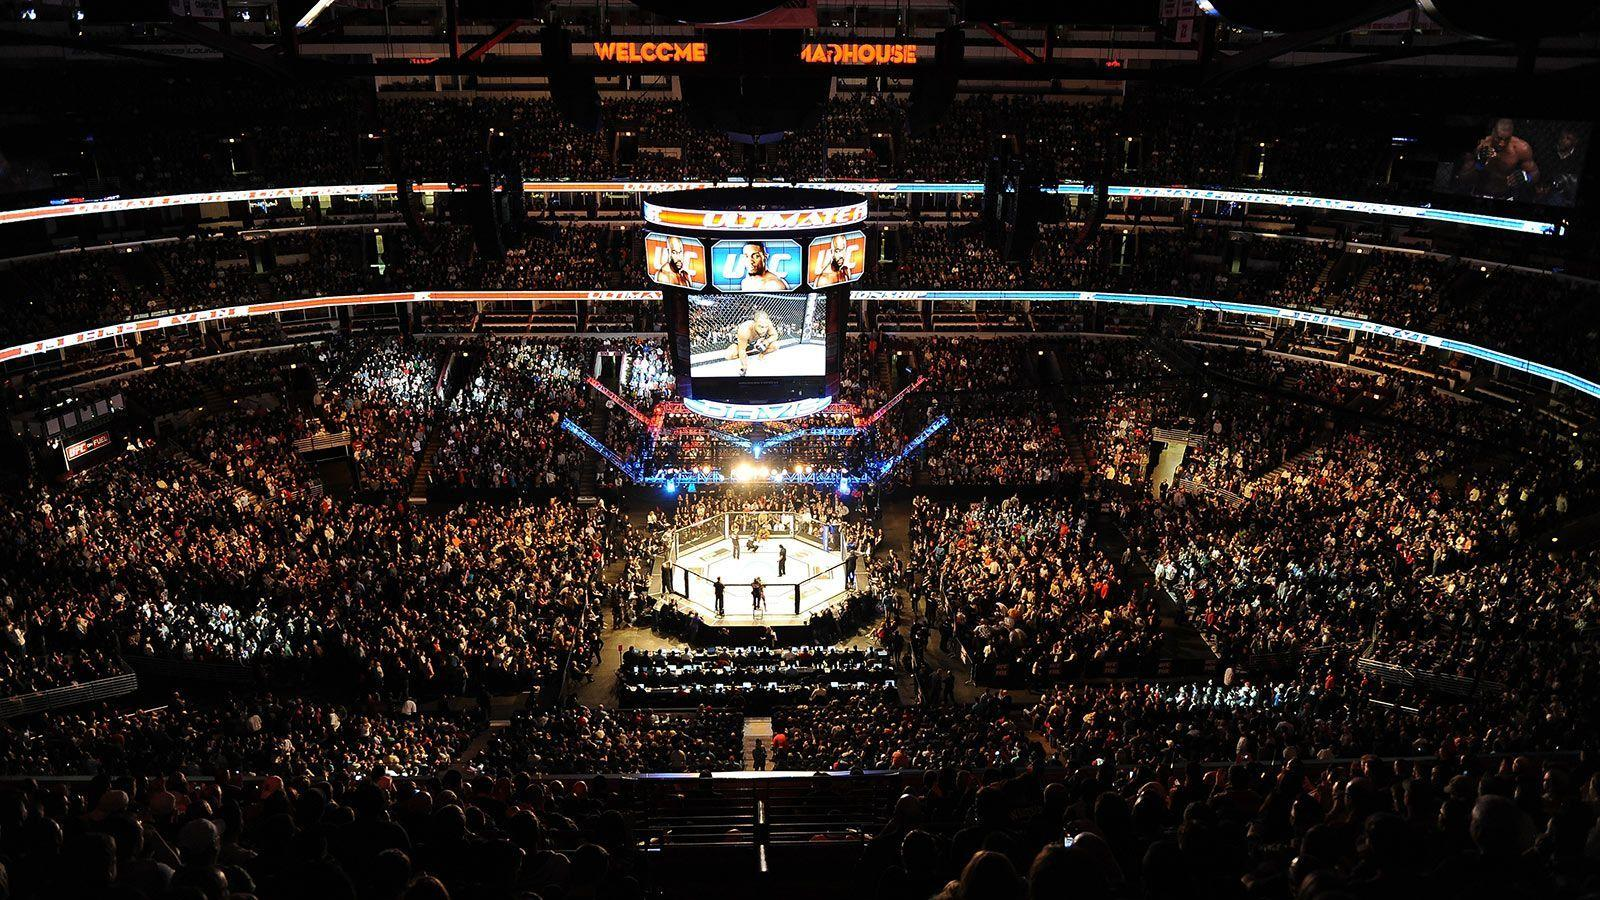 Ufc wallpapers hd wallpaper cave - Free ufc wallpapers ...